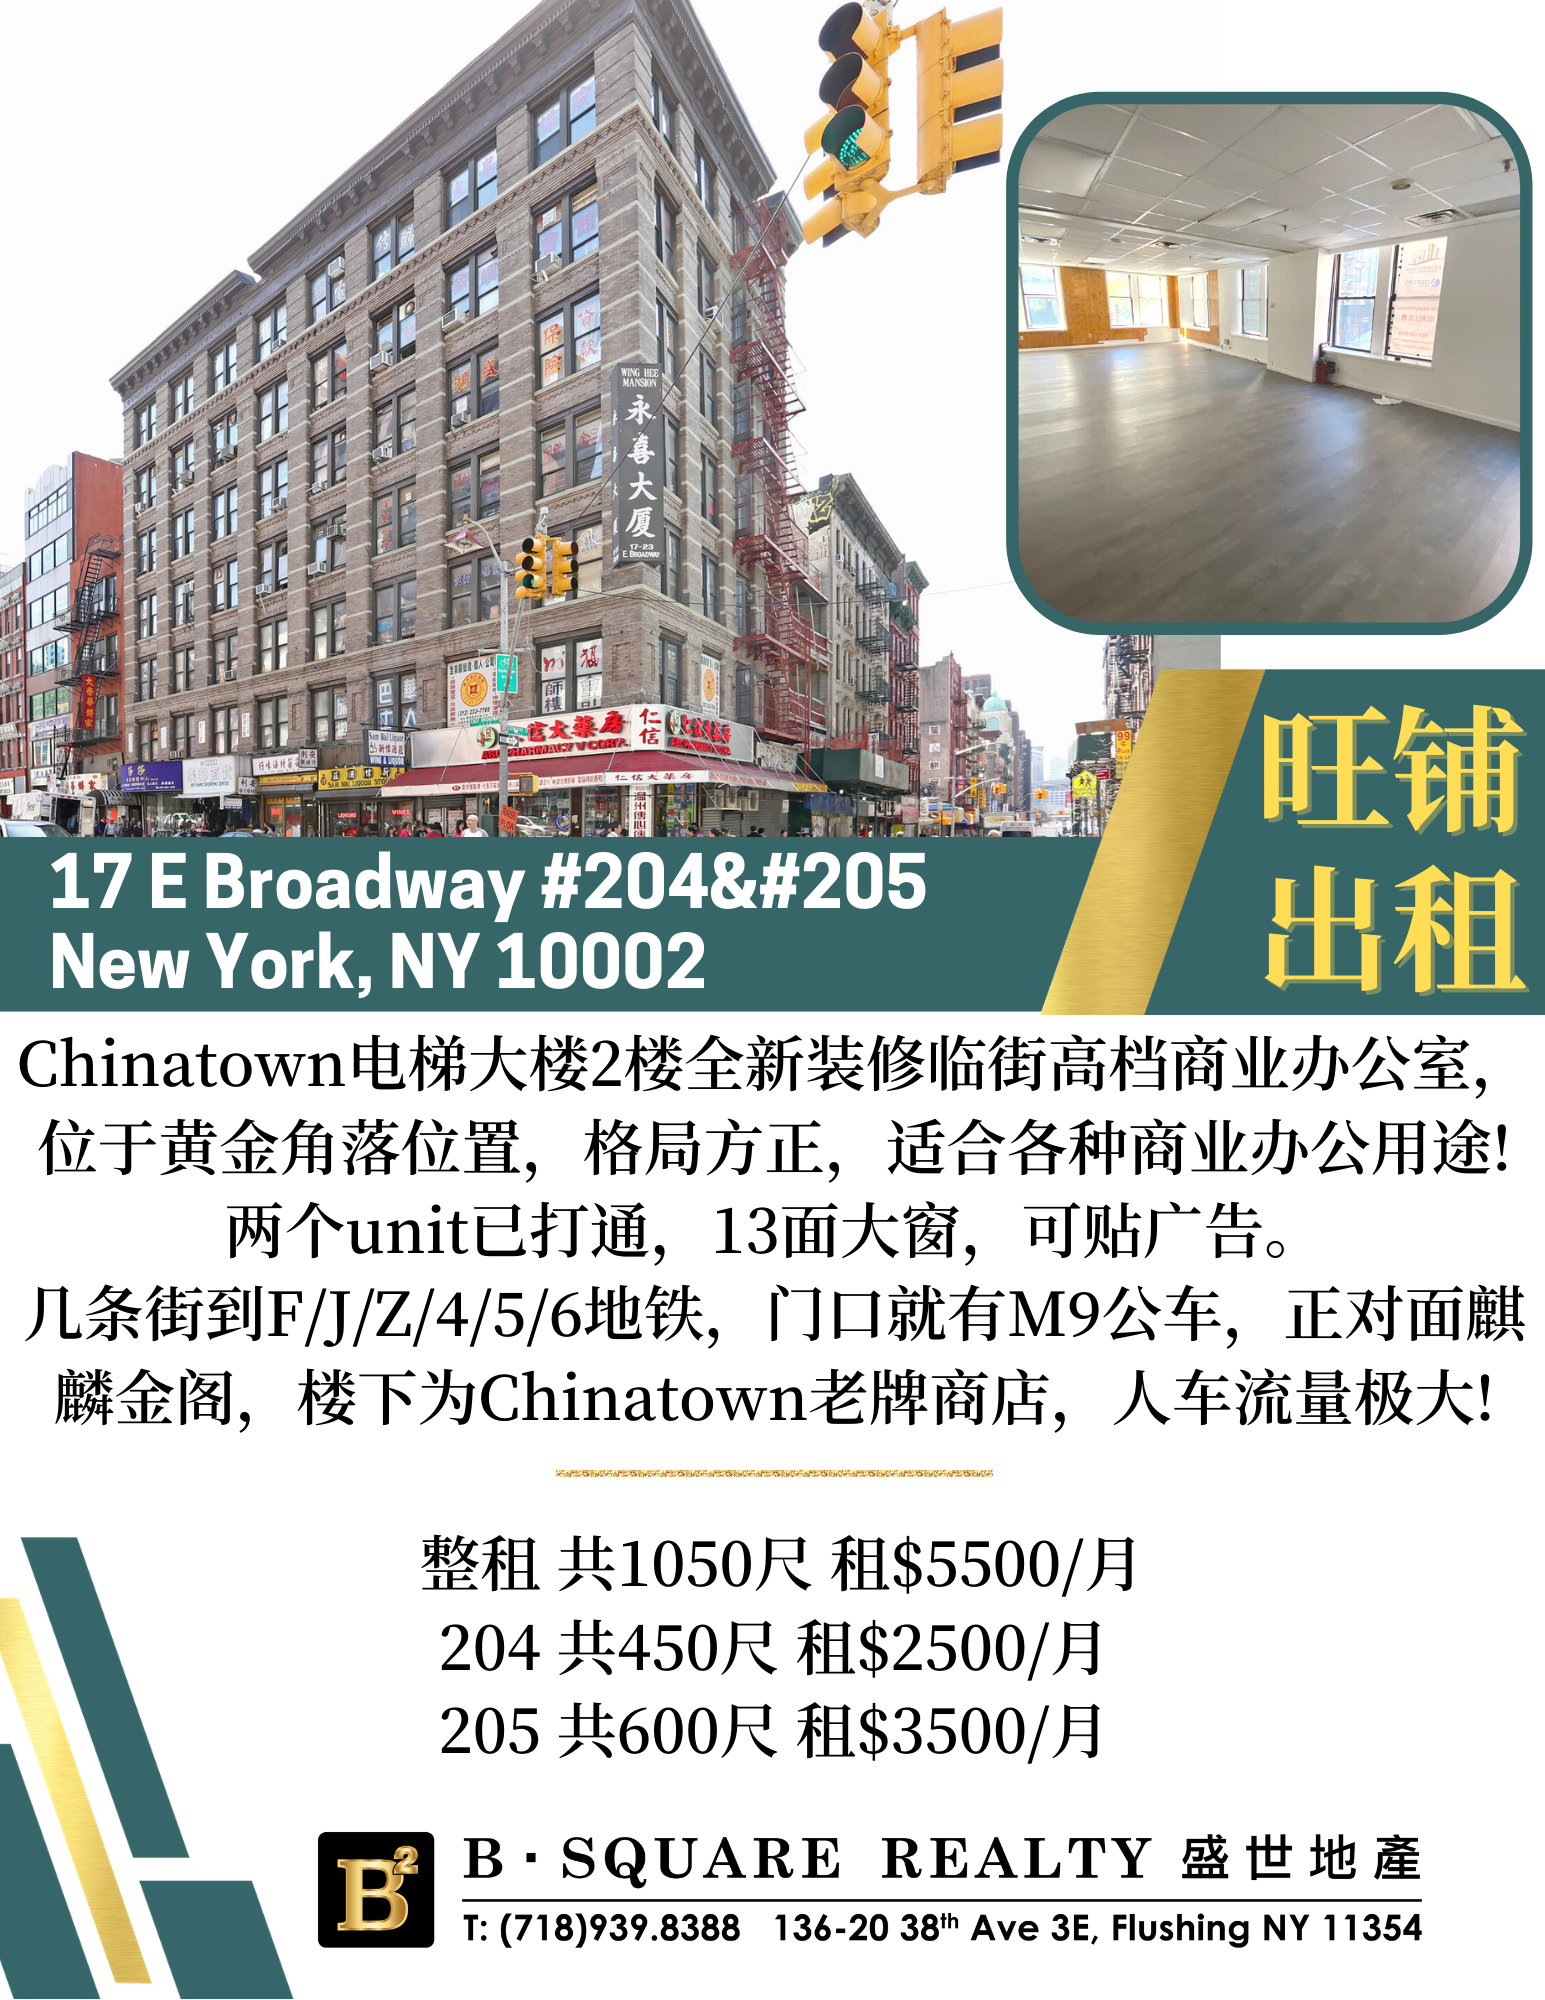 17 E Broadway 204+205 For Lease.png